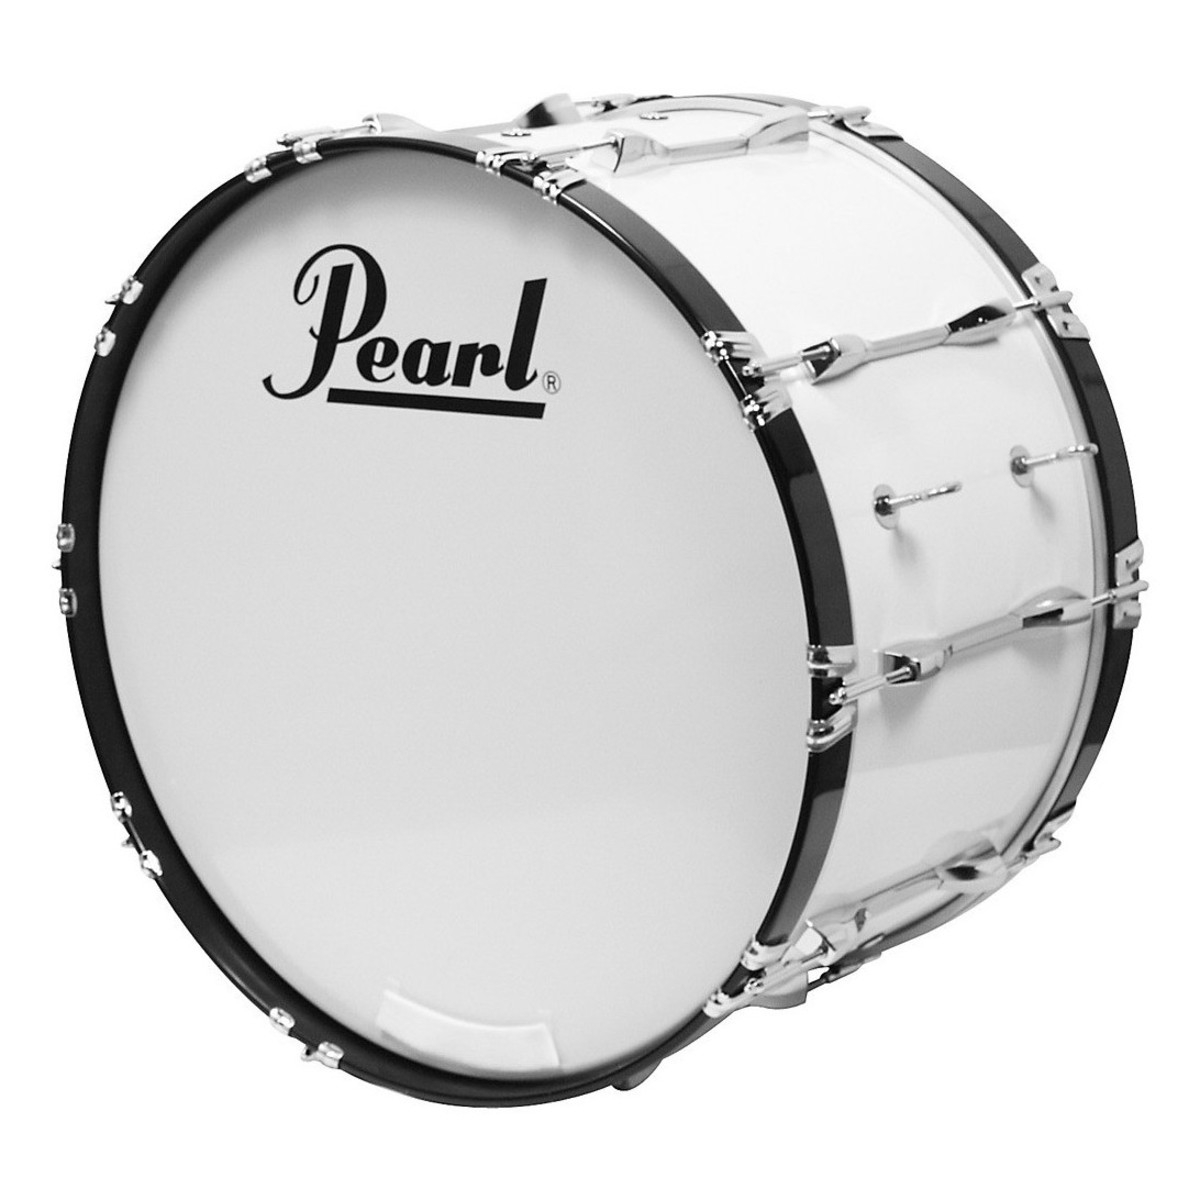 Pearl Competitor 28   x 14   Marching Bass Drum 9f263364ea91